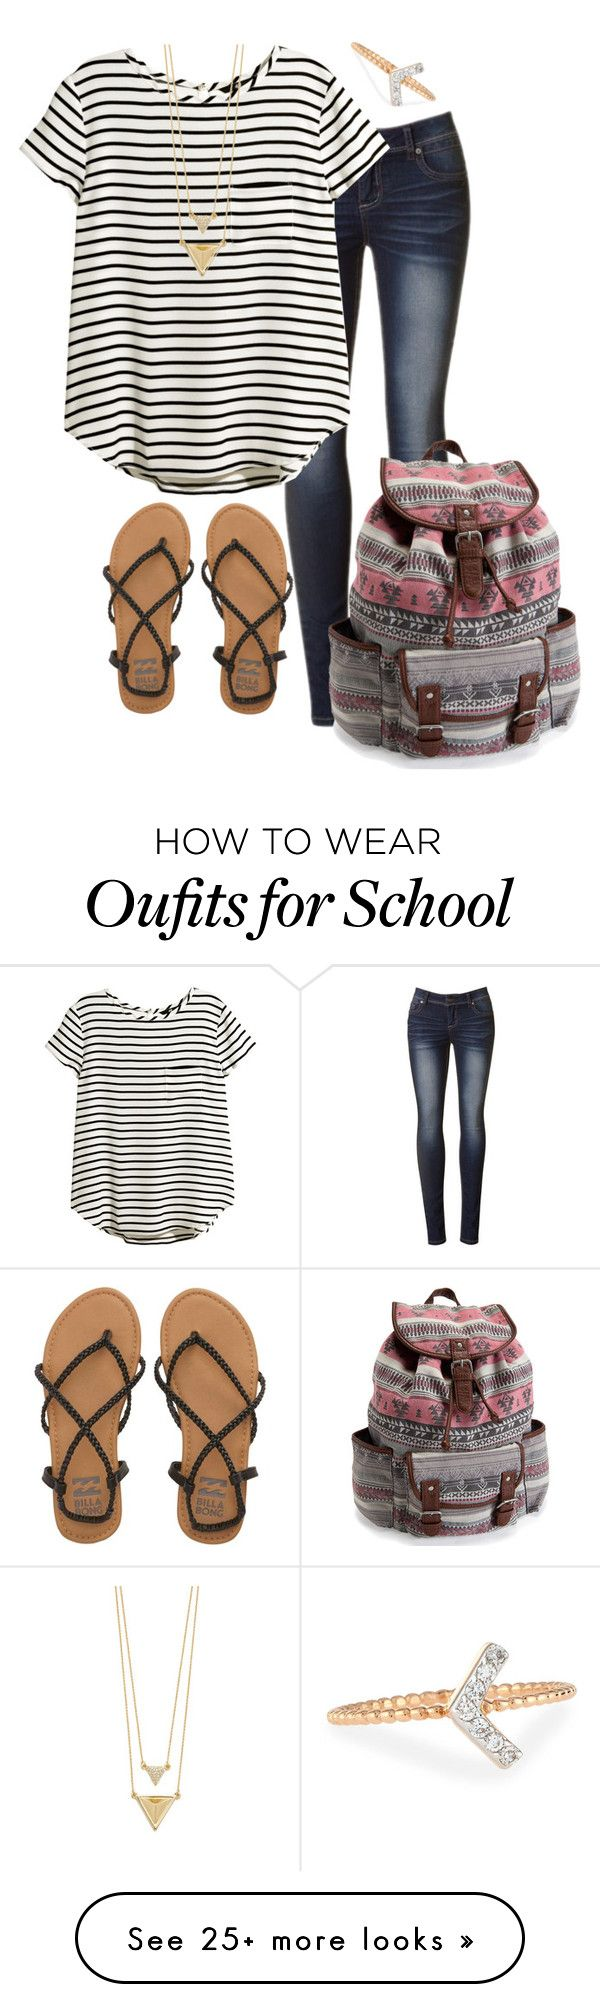 """School"" by rachel-danca on Polyvore featuring H&M, Billabong, House of Harlow 1960, Kismet by Milka and Aéropostale"